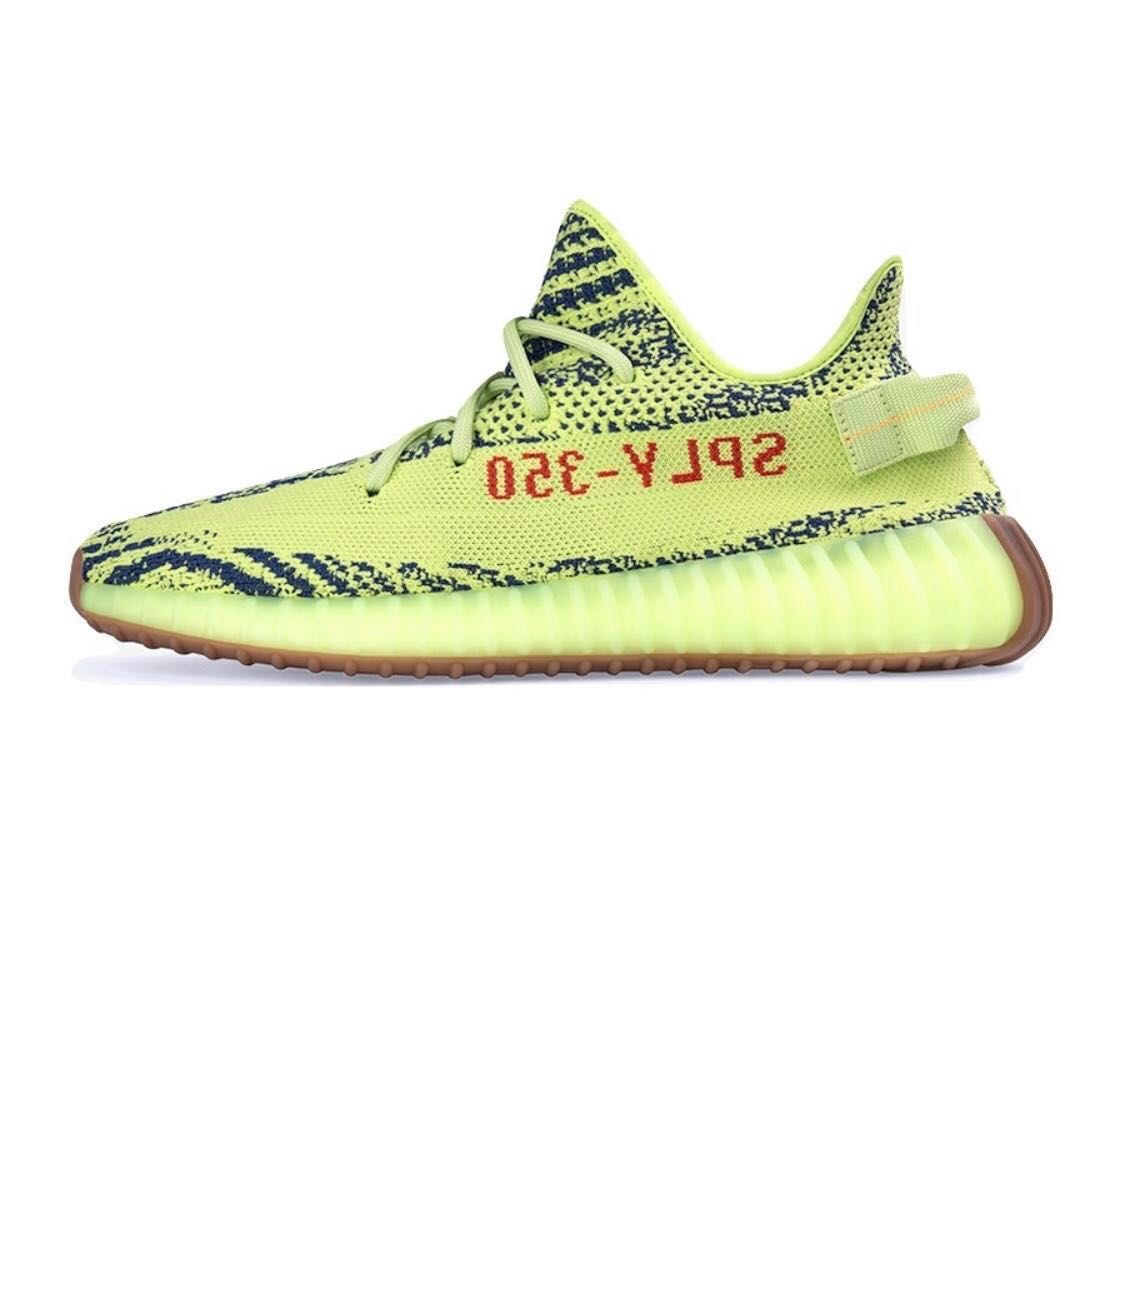 8e503b297 Yeezy Boost 350 V2 Frozen Yellow US10